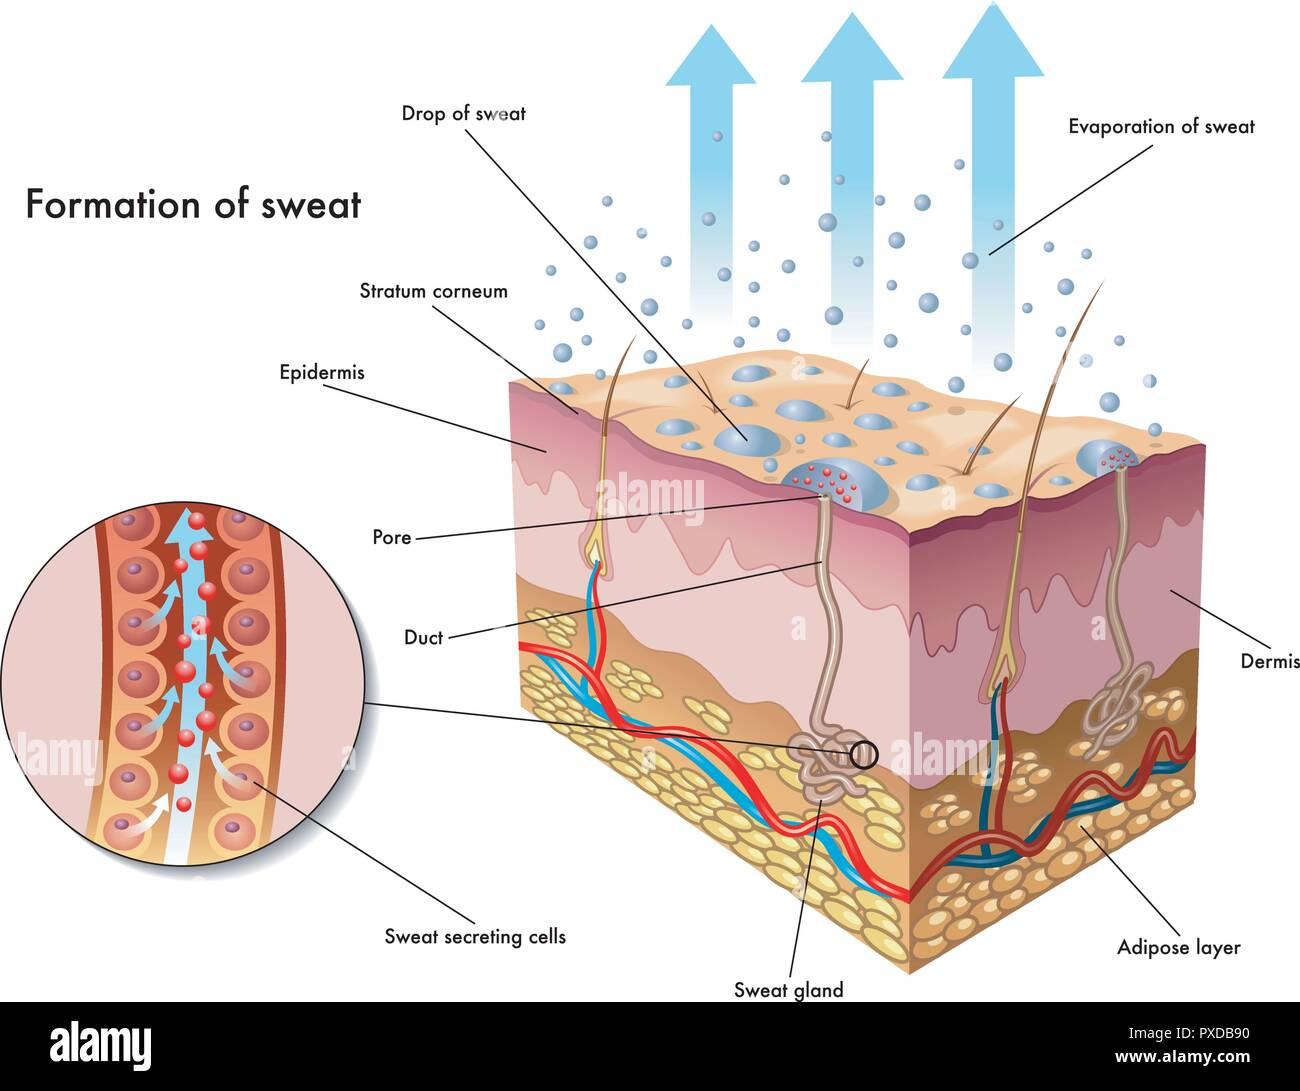 hight resolution of medical illustration of the formation of sweat stock image